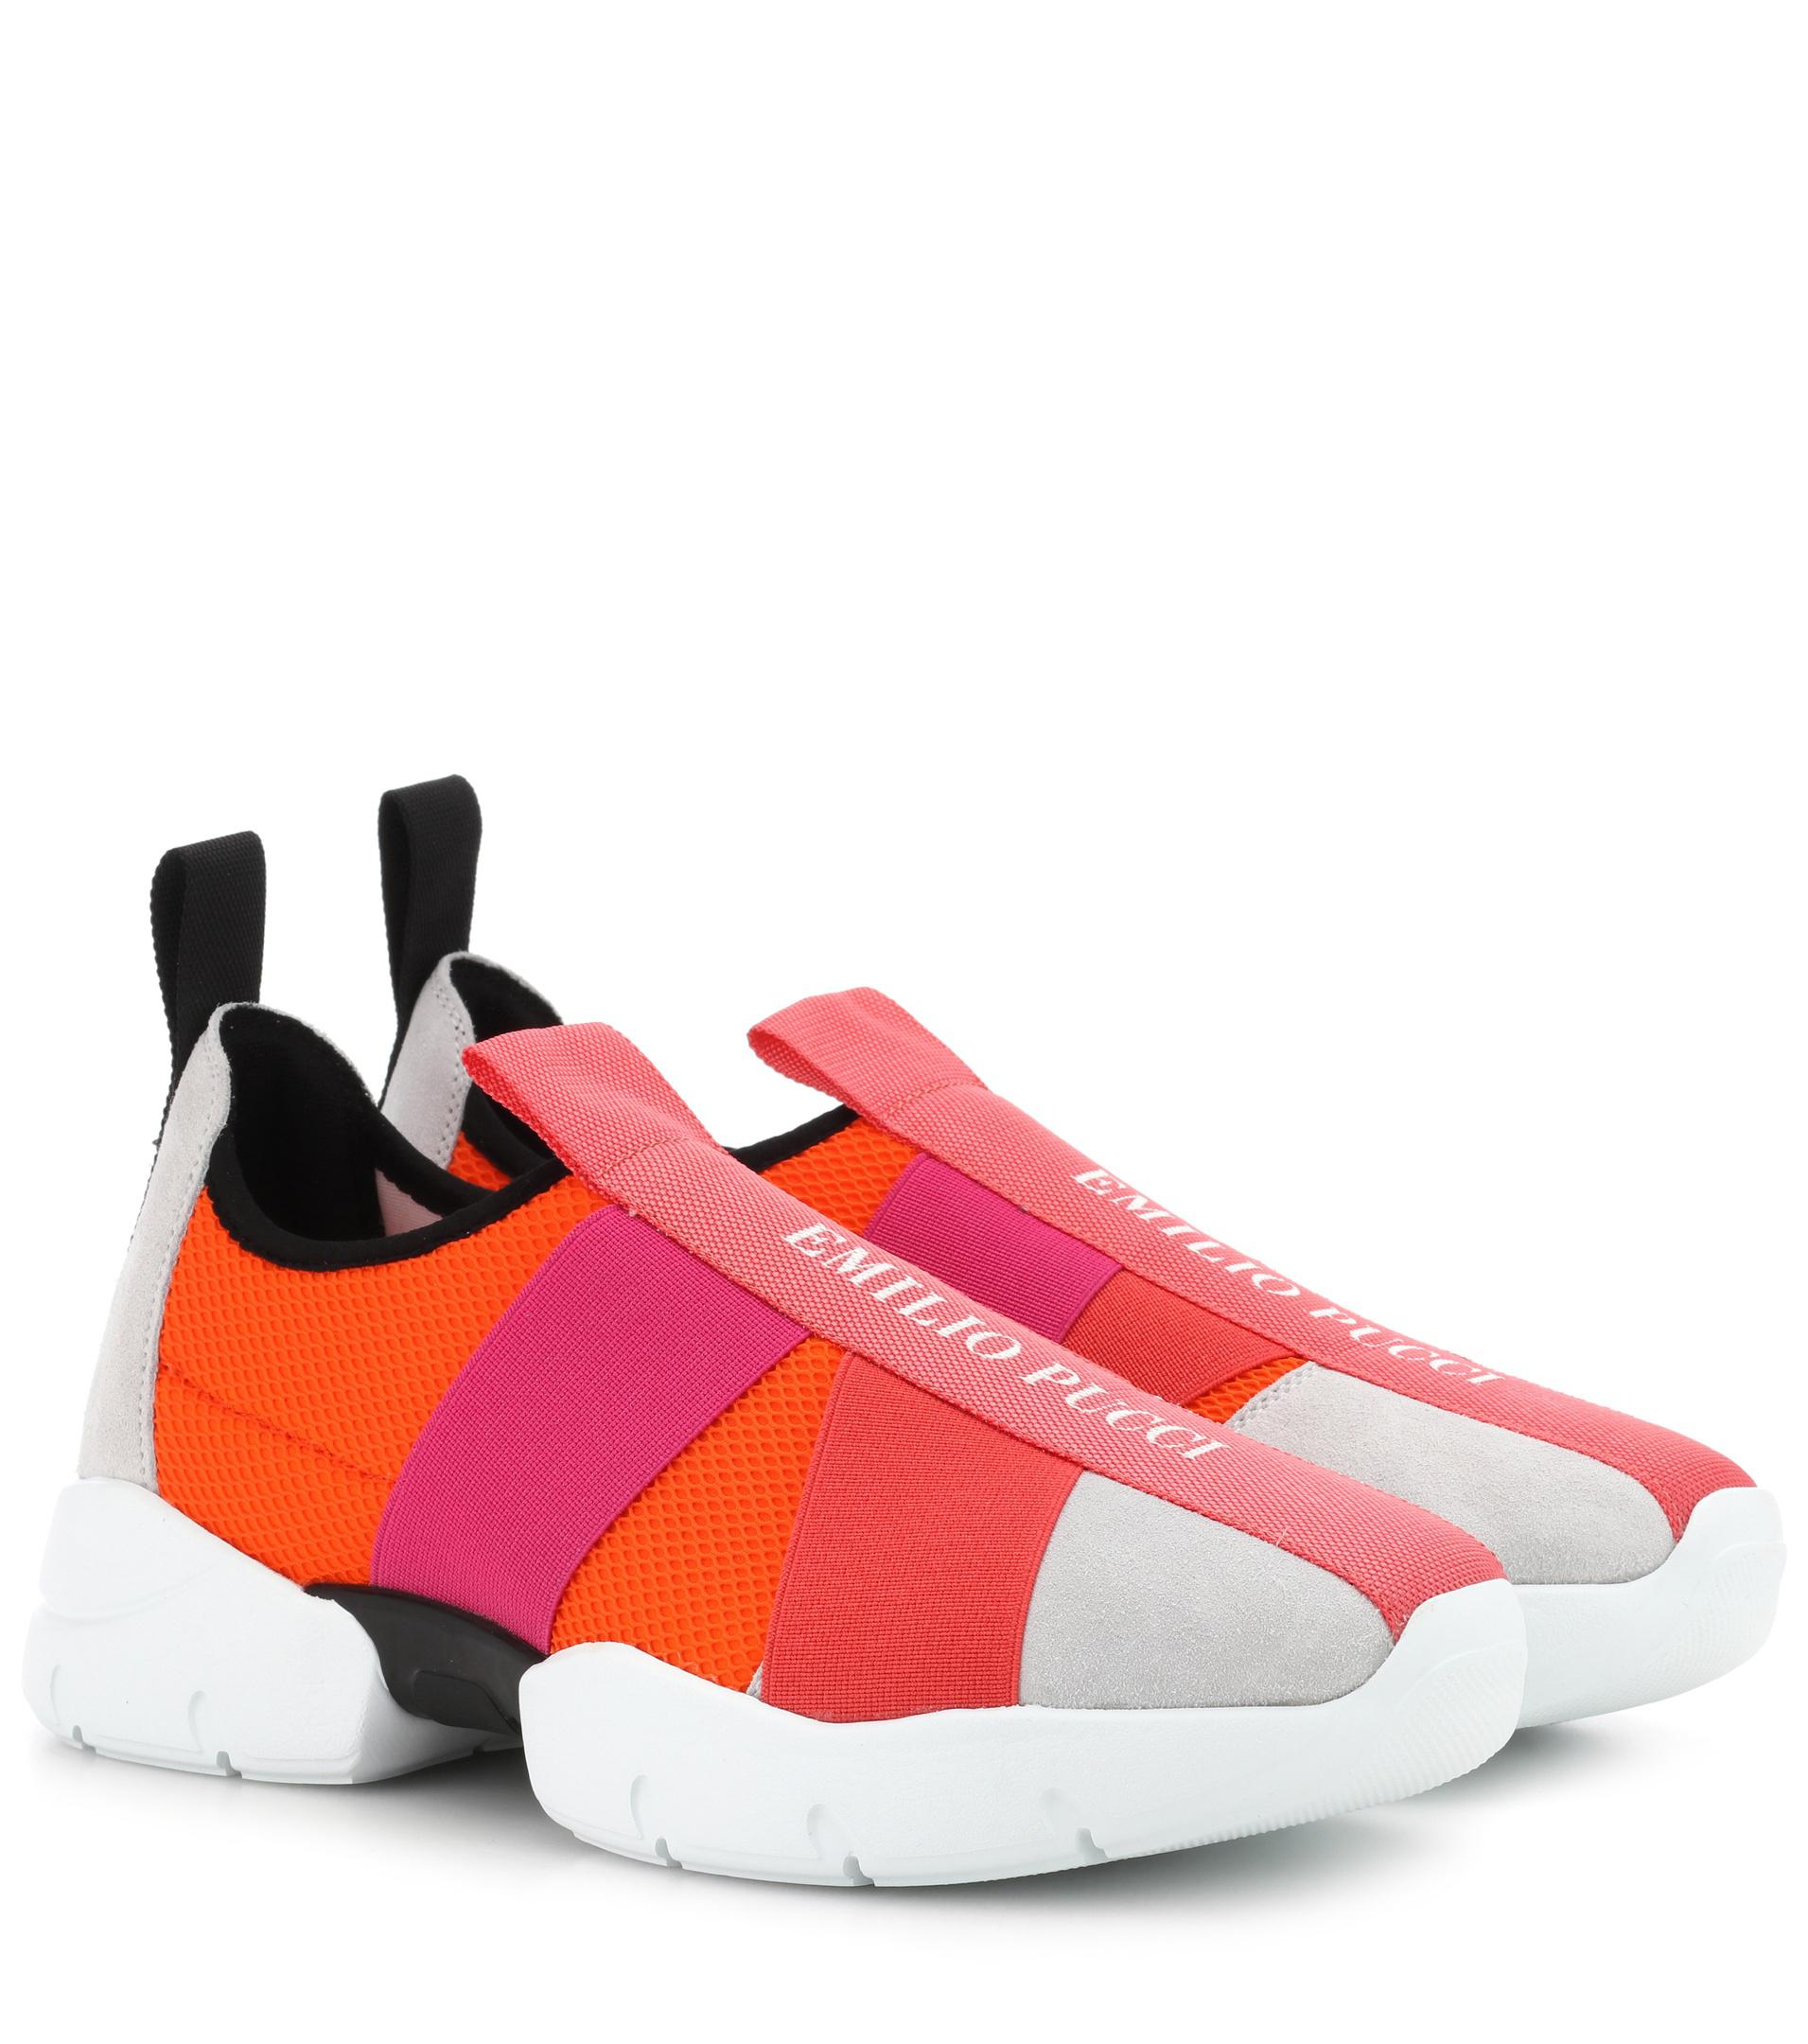 clearance choice Emilio Pucci Suede-trimmed sneakers cheap sast for sale for sale clearance footlocker discount low price vKRpf6